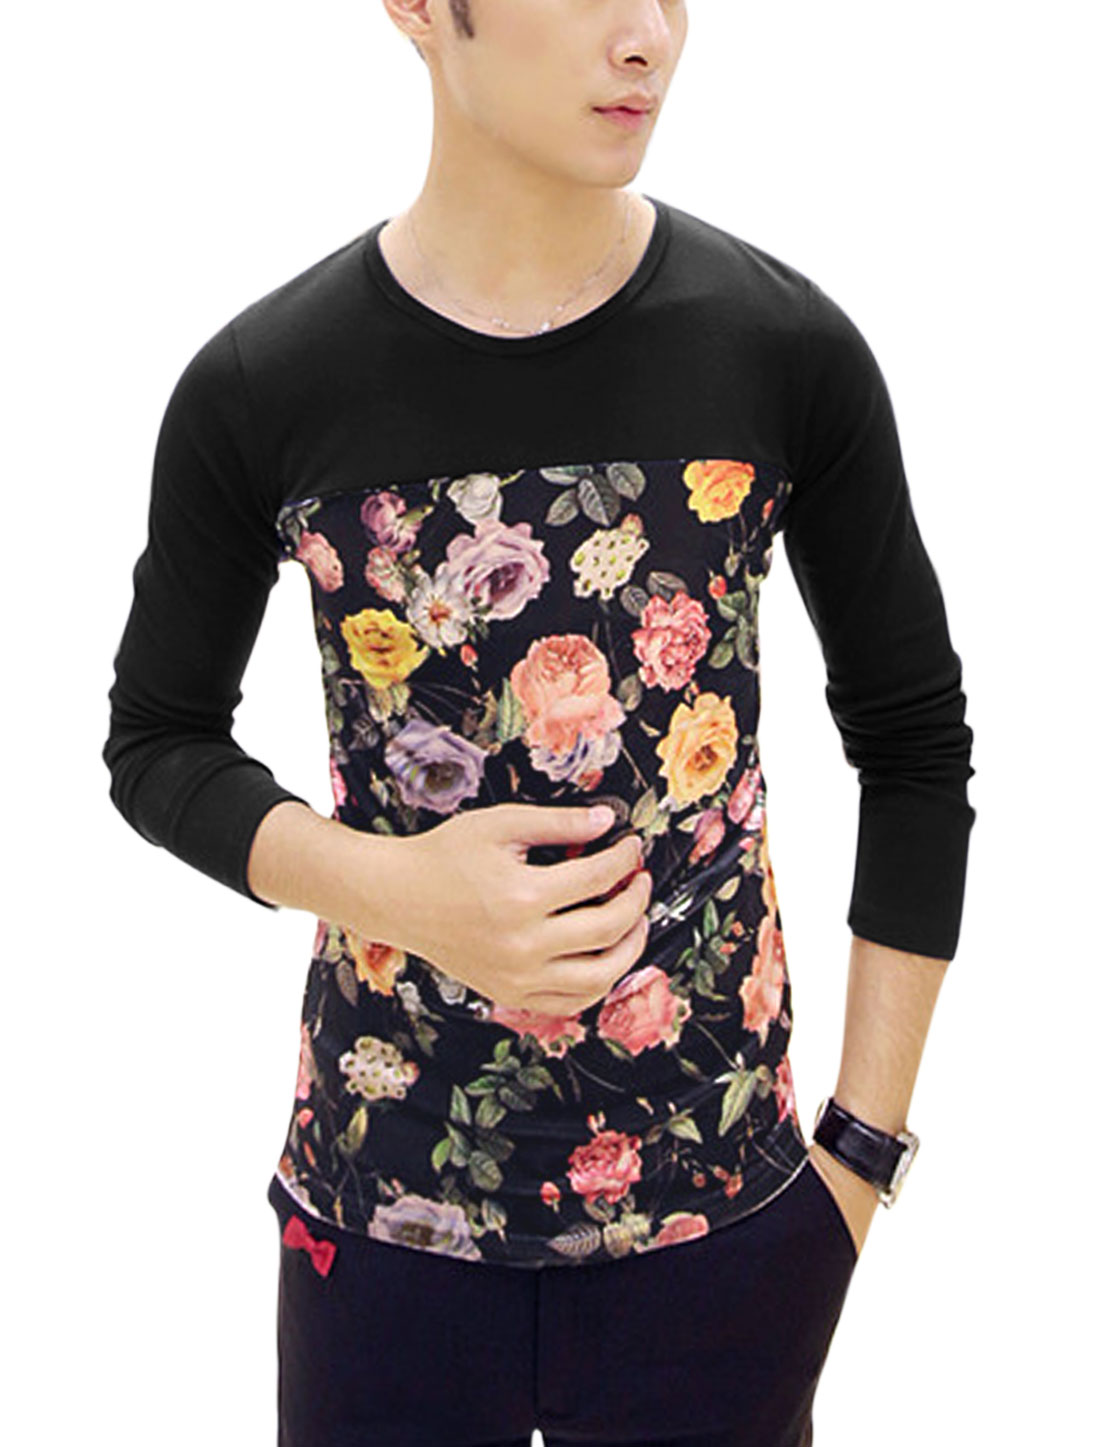 Spliced Design Floral Print Contrast Color Casual Shirt for Men Black S